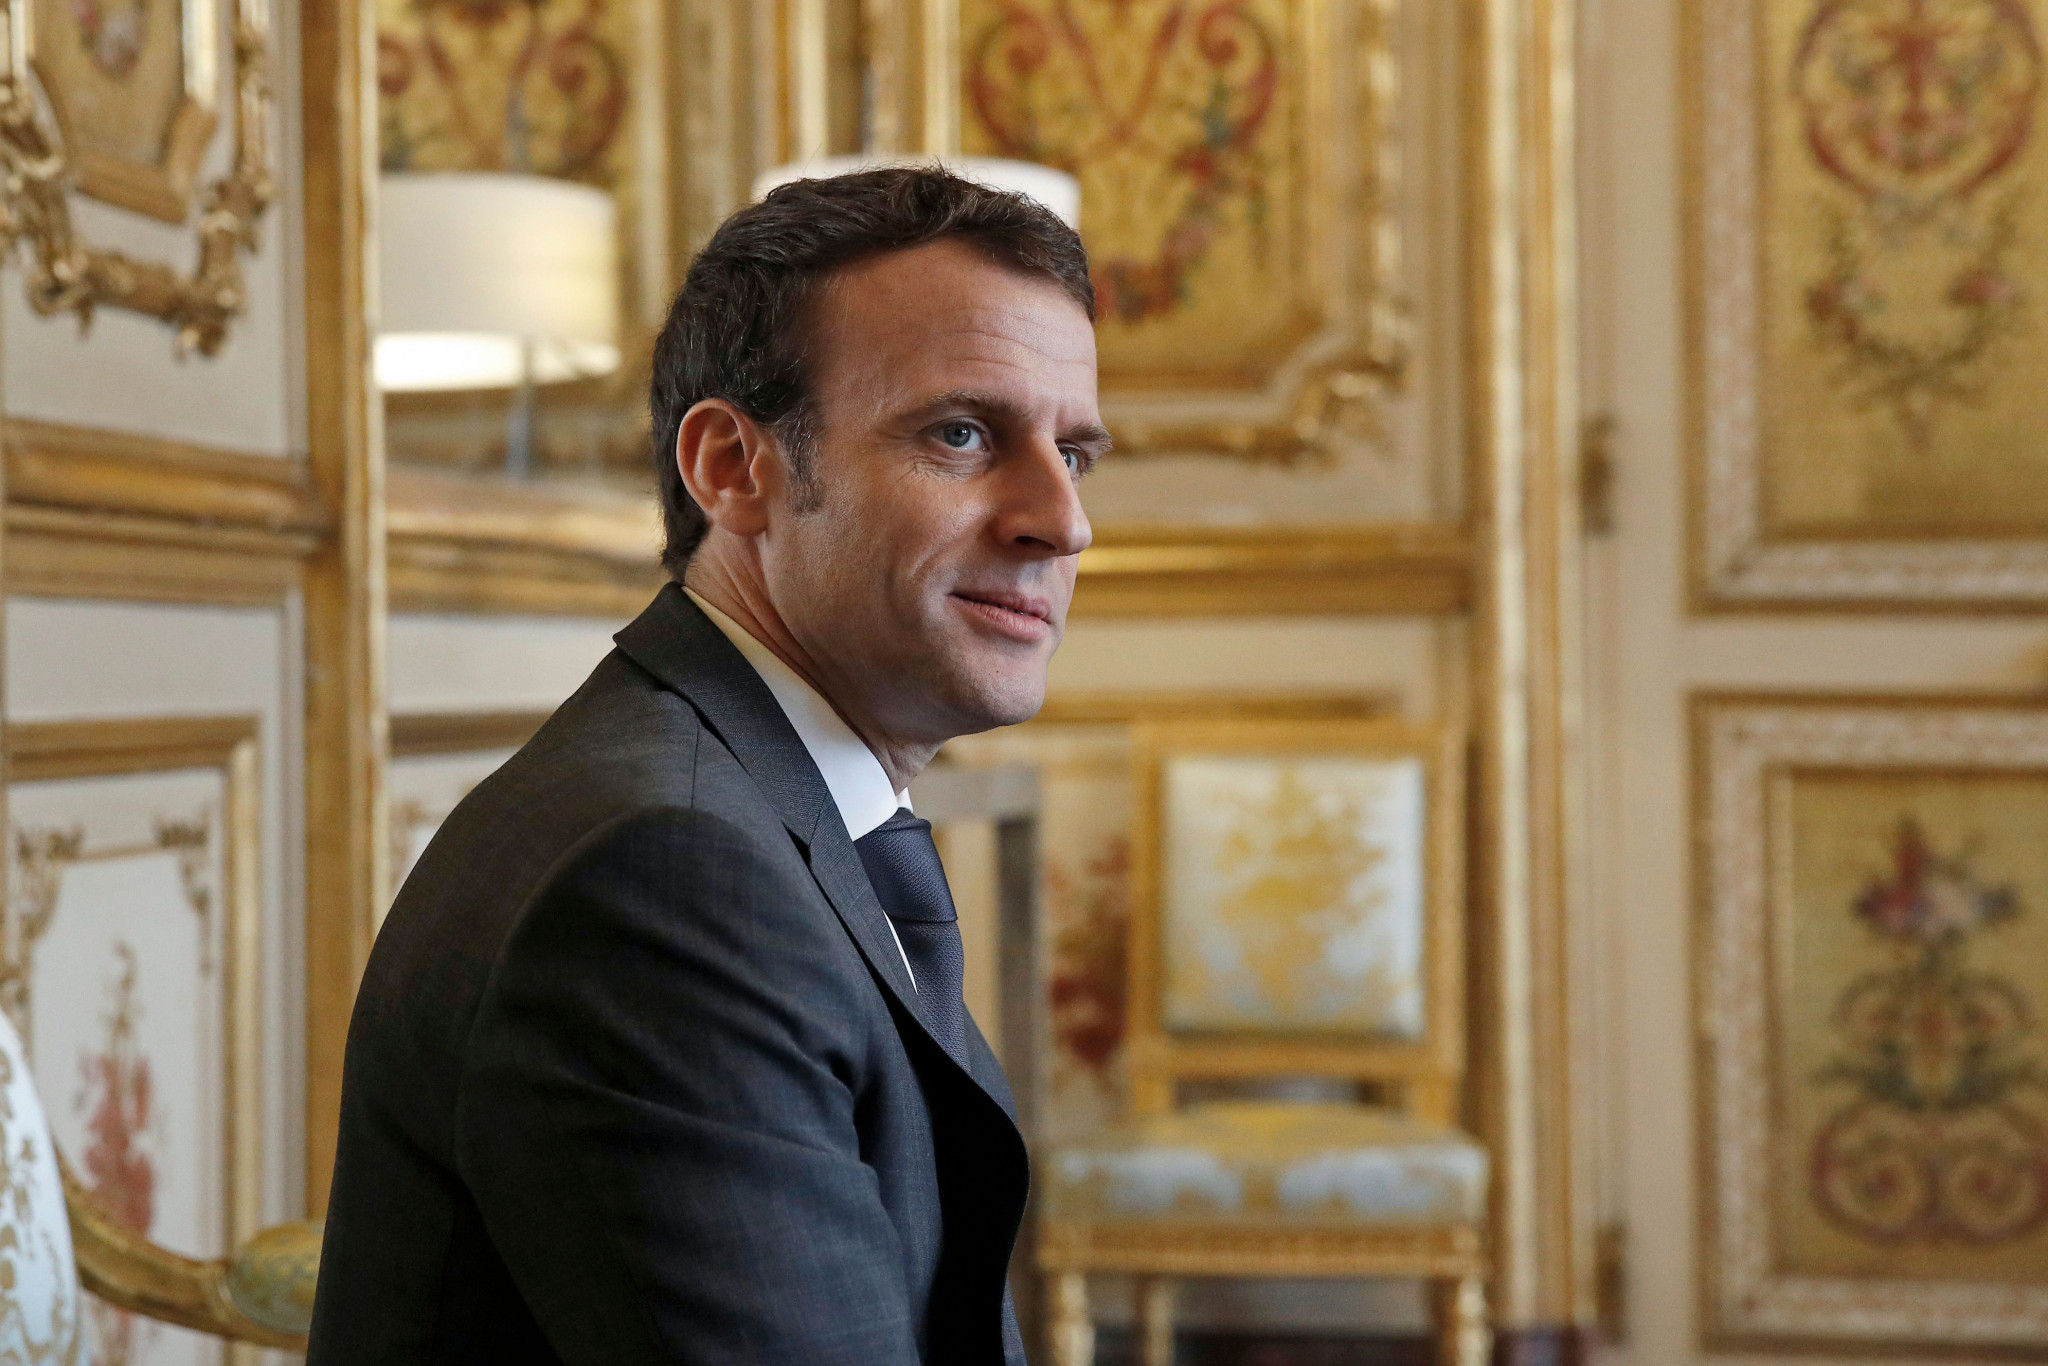 French President Emmanuel Macron has claimed that Paris 2024 is not yet providing benefits to some of the capital's poorest areas ©Getty Images